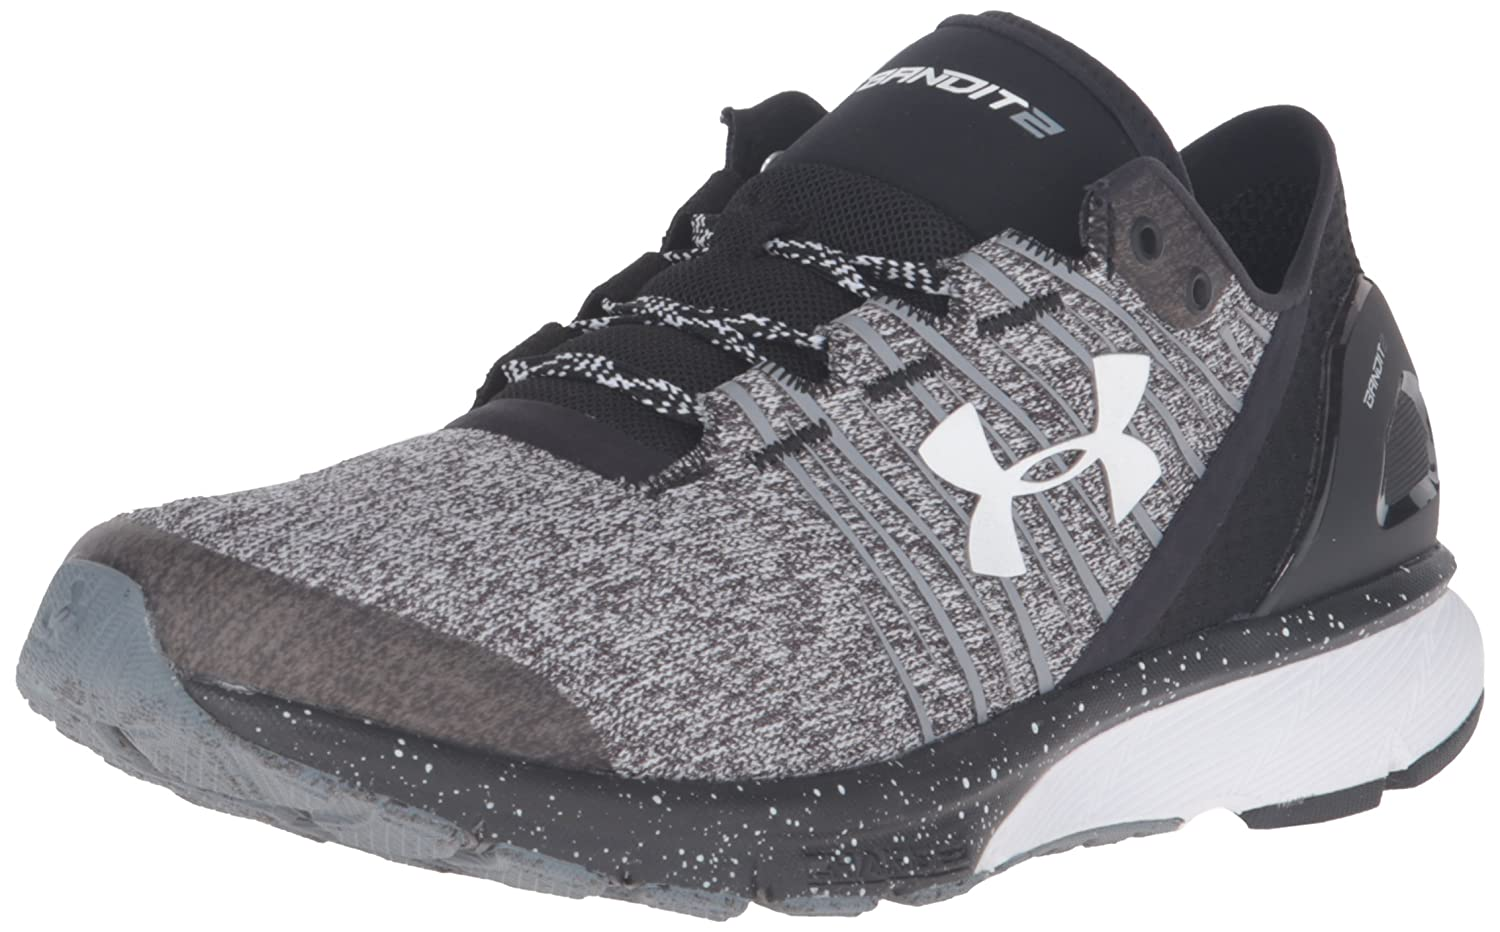 Under Armour Charged Bandit 2 Women's Zapatillas Para Correr - AW16